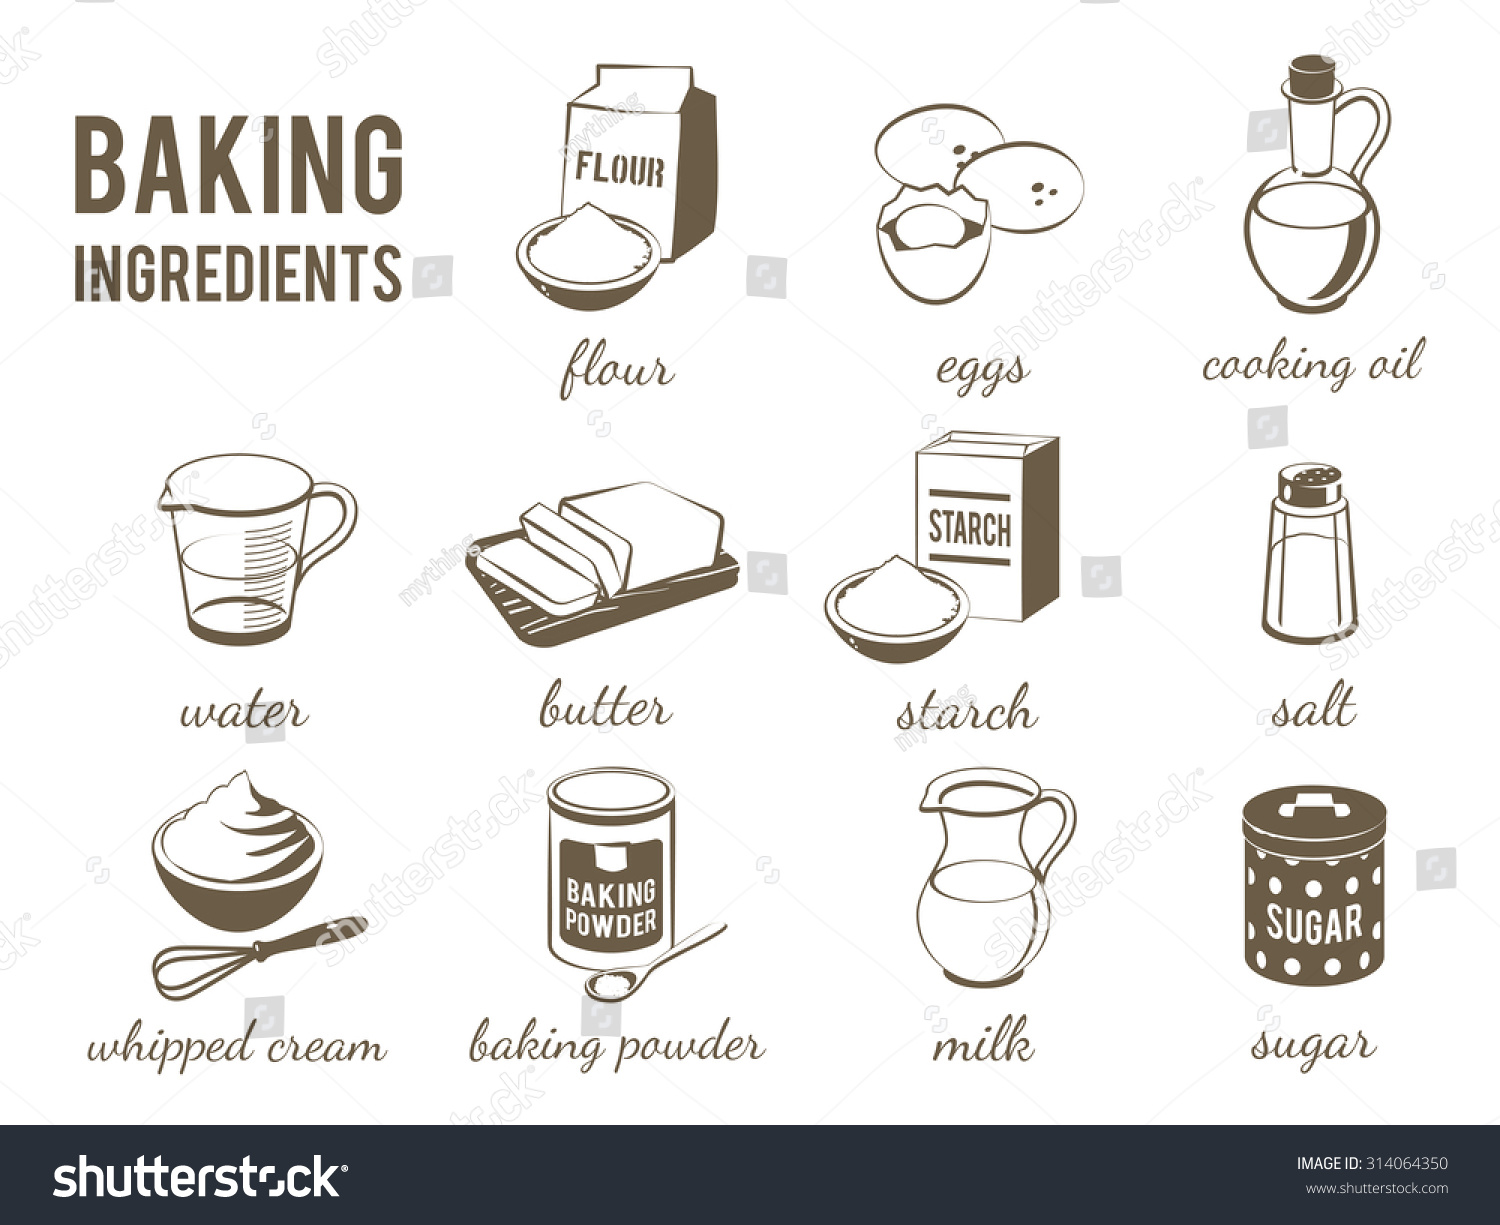 Set monochrome lineart food icons baking stock vector for Art cuisine evolution 10 piece cooking set